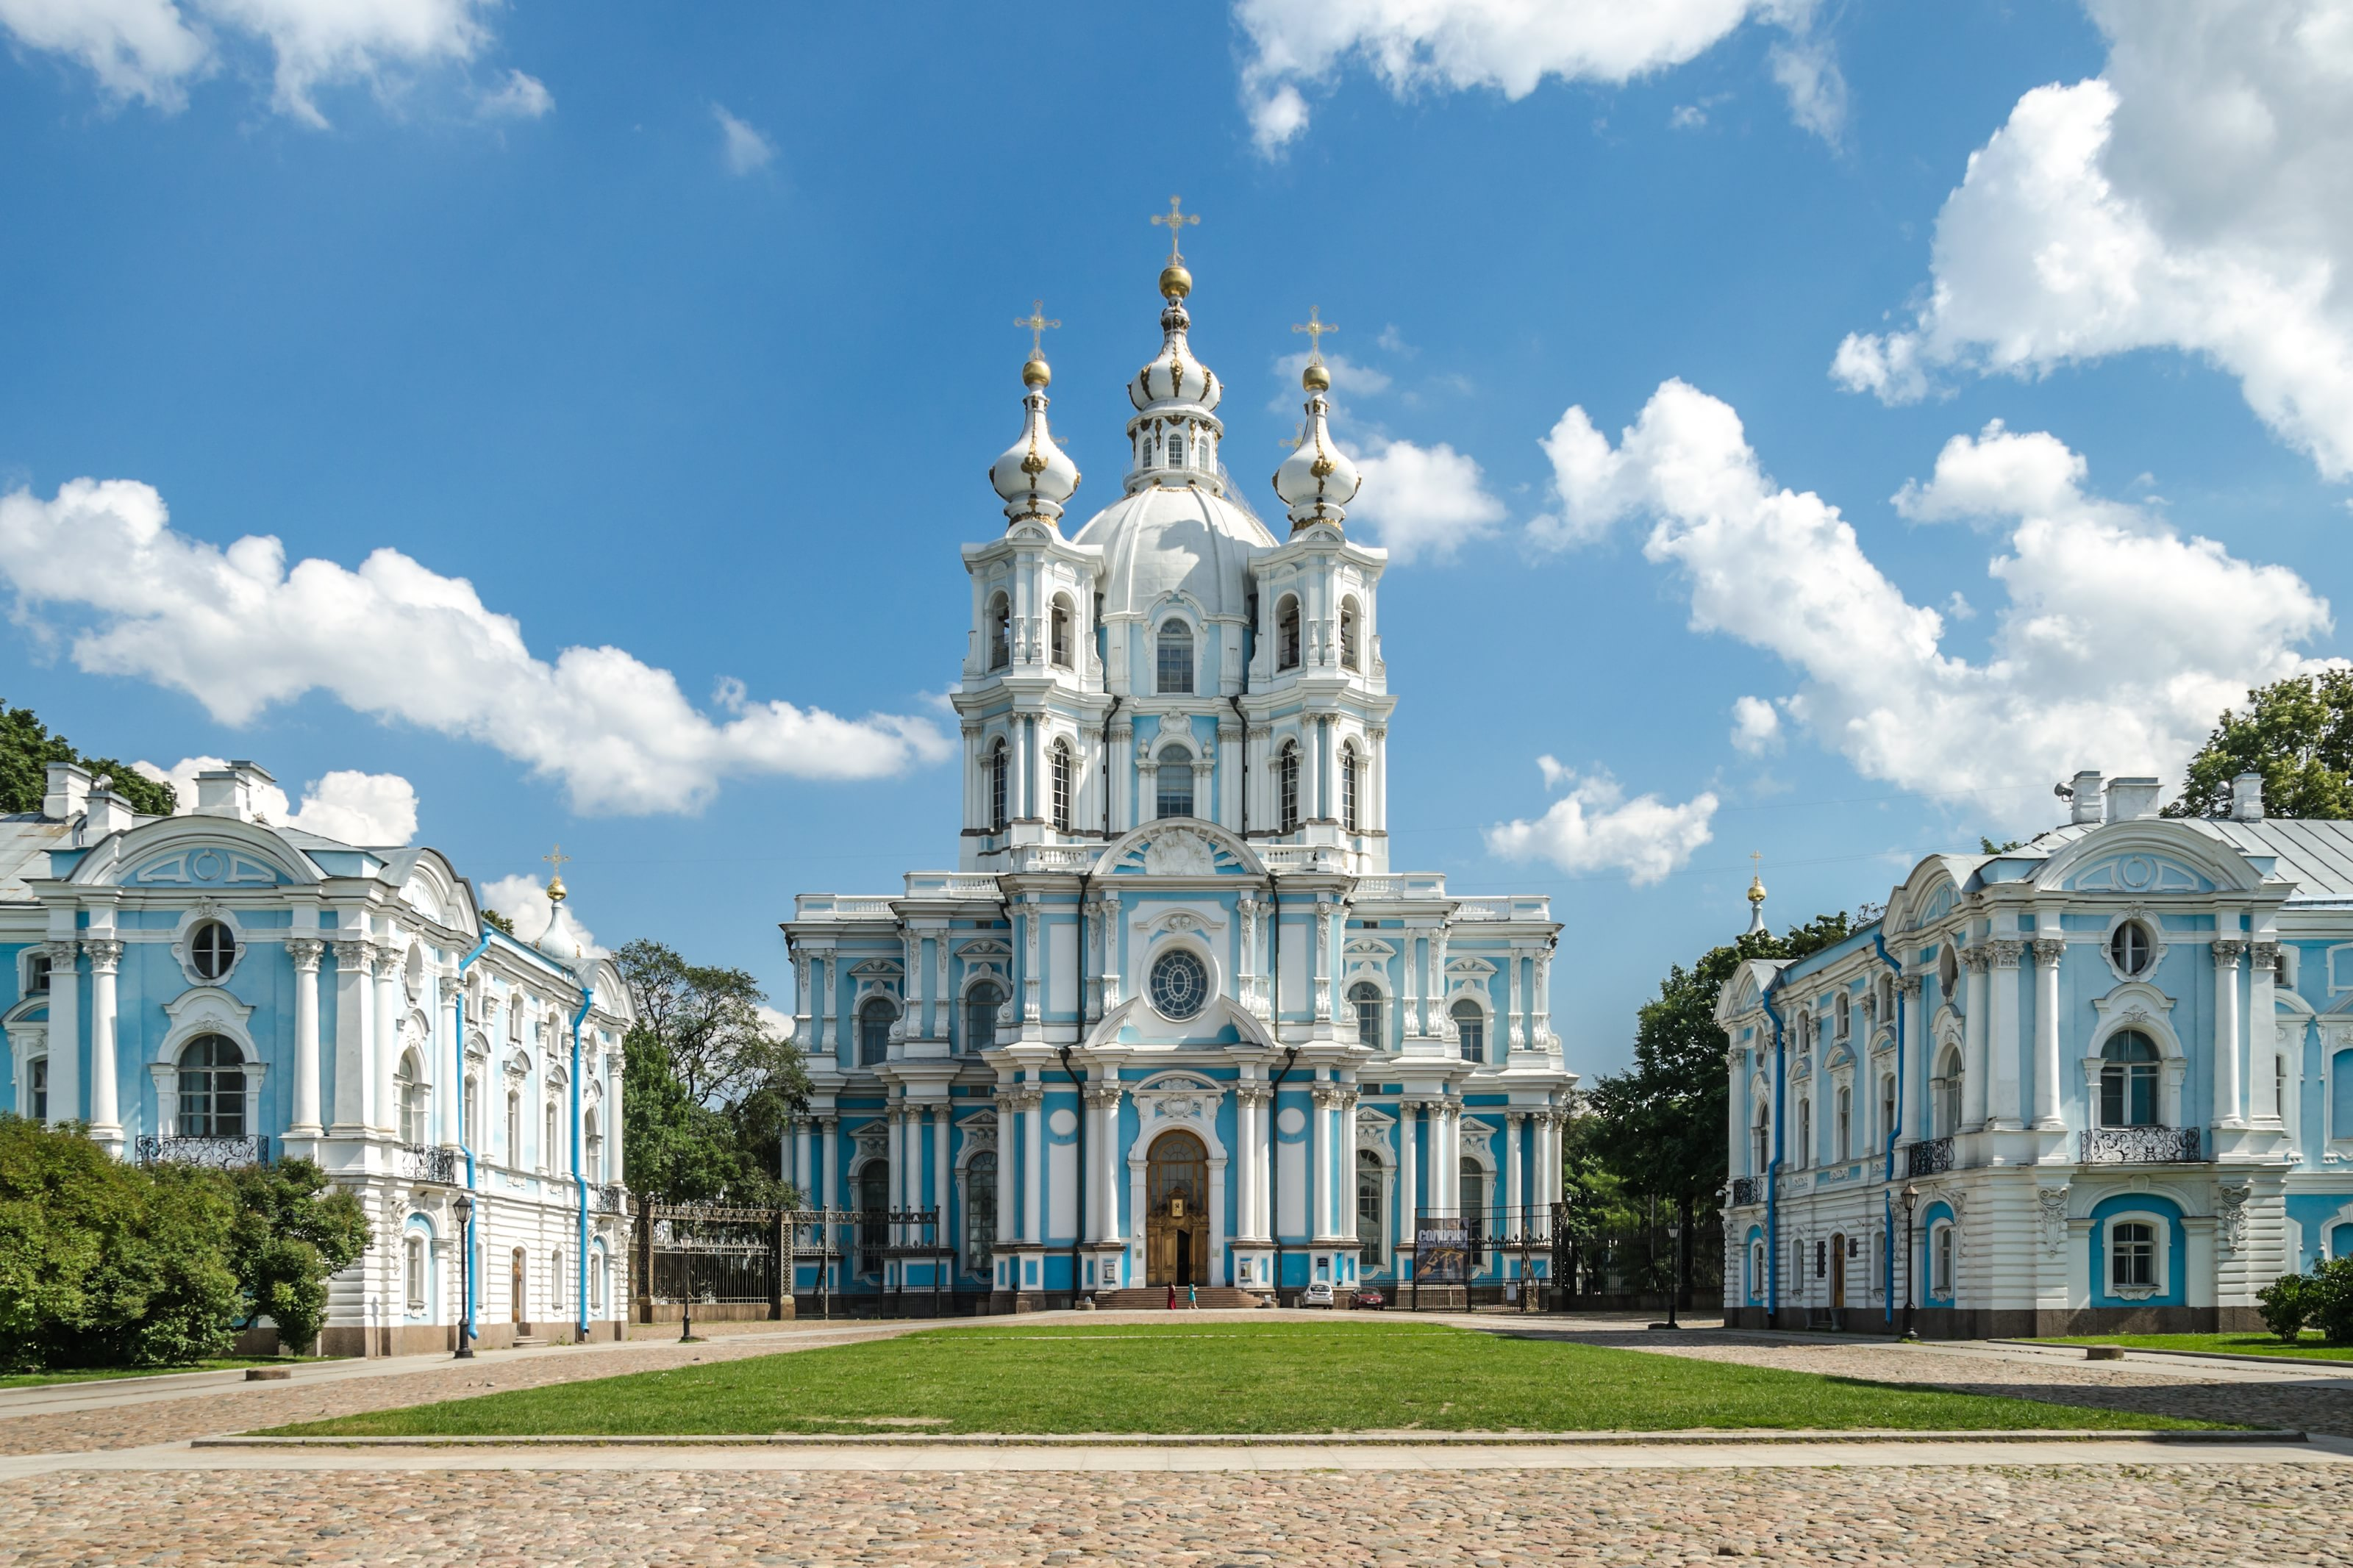 A Look At Russian Architecture: Смольный Собор - Smolny Cathedral ...